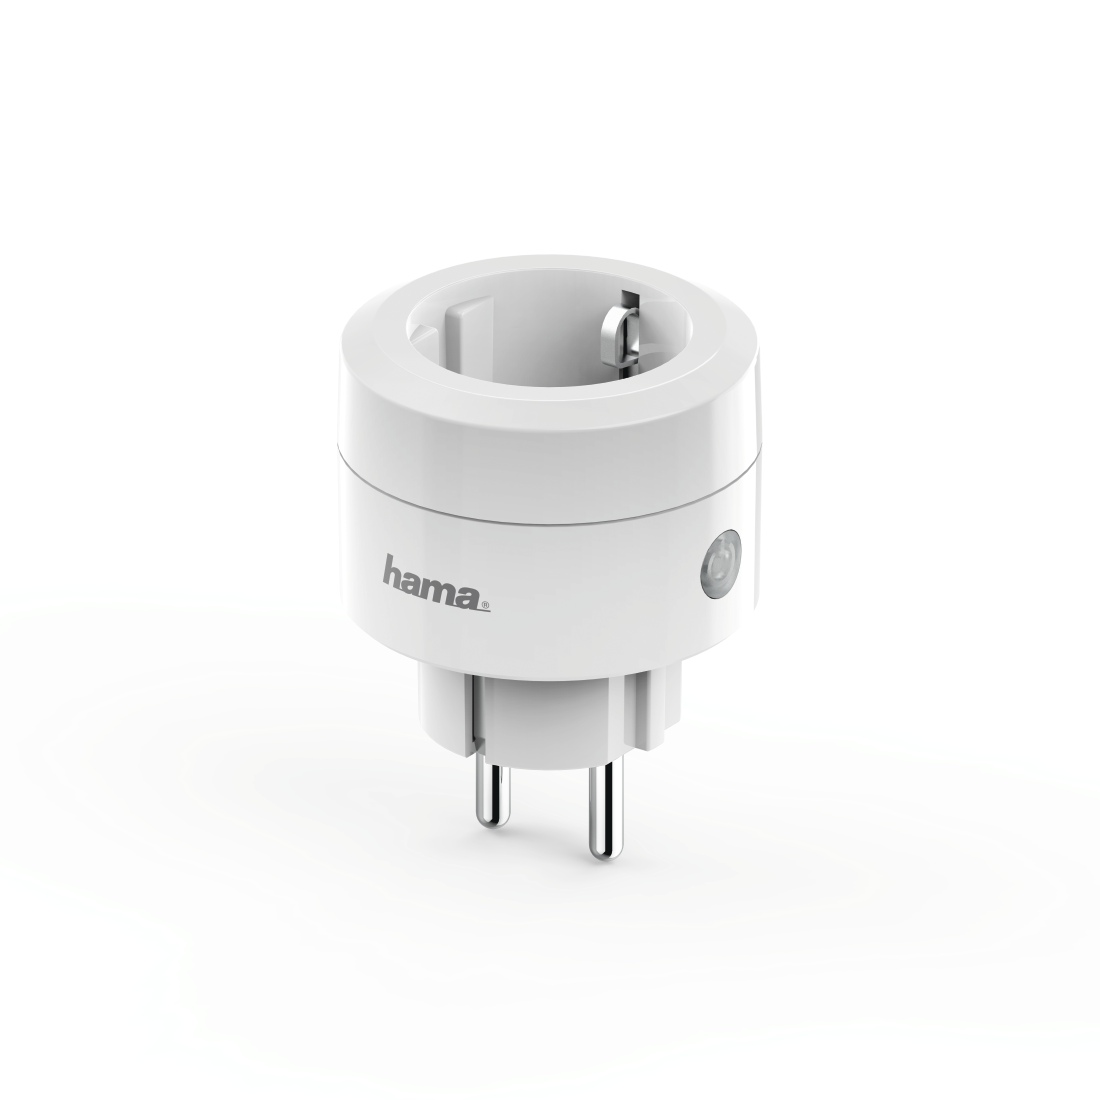 "abx High-Res Image - Hama, ""Basic"" WLAN Socket, without Hub, for Voice and App Control, 2,300 W, 10 A"